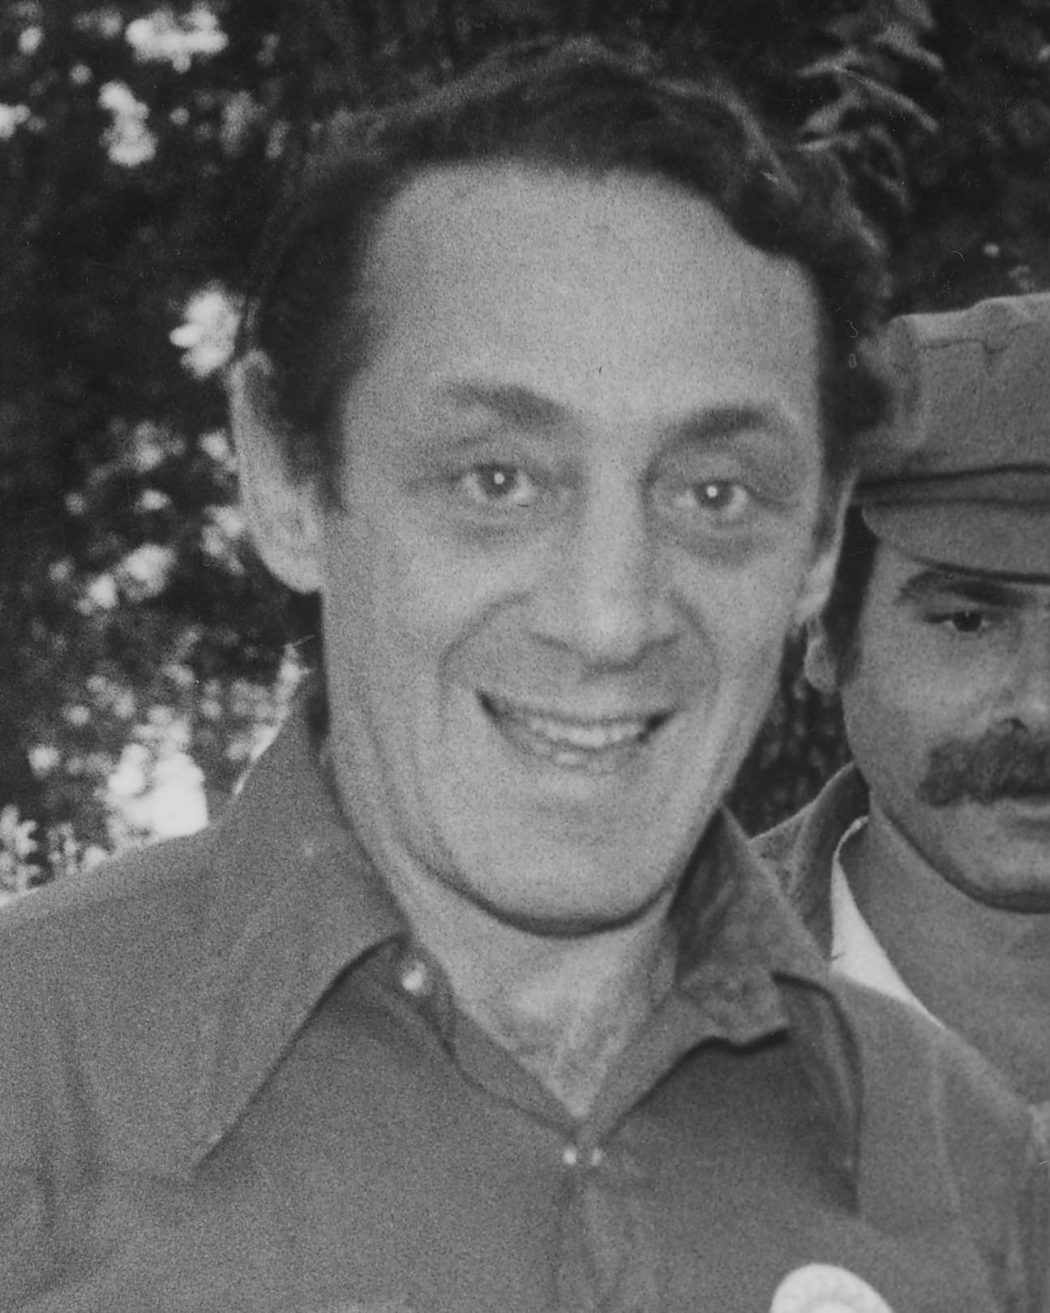 Harvey_Milk_at_Gay_Pride_San_Jose,_June_1978_(cropped)